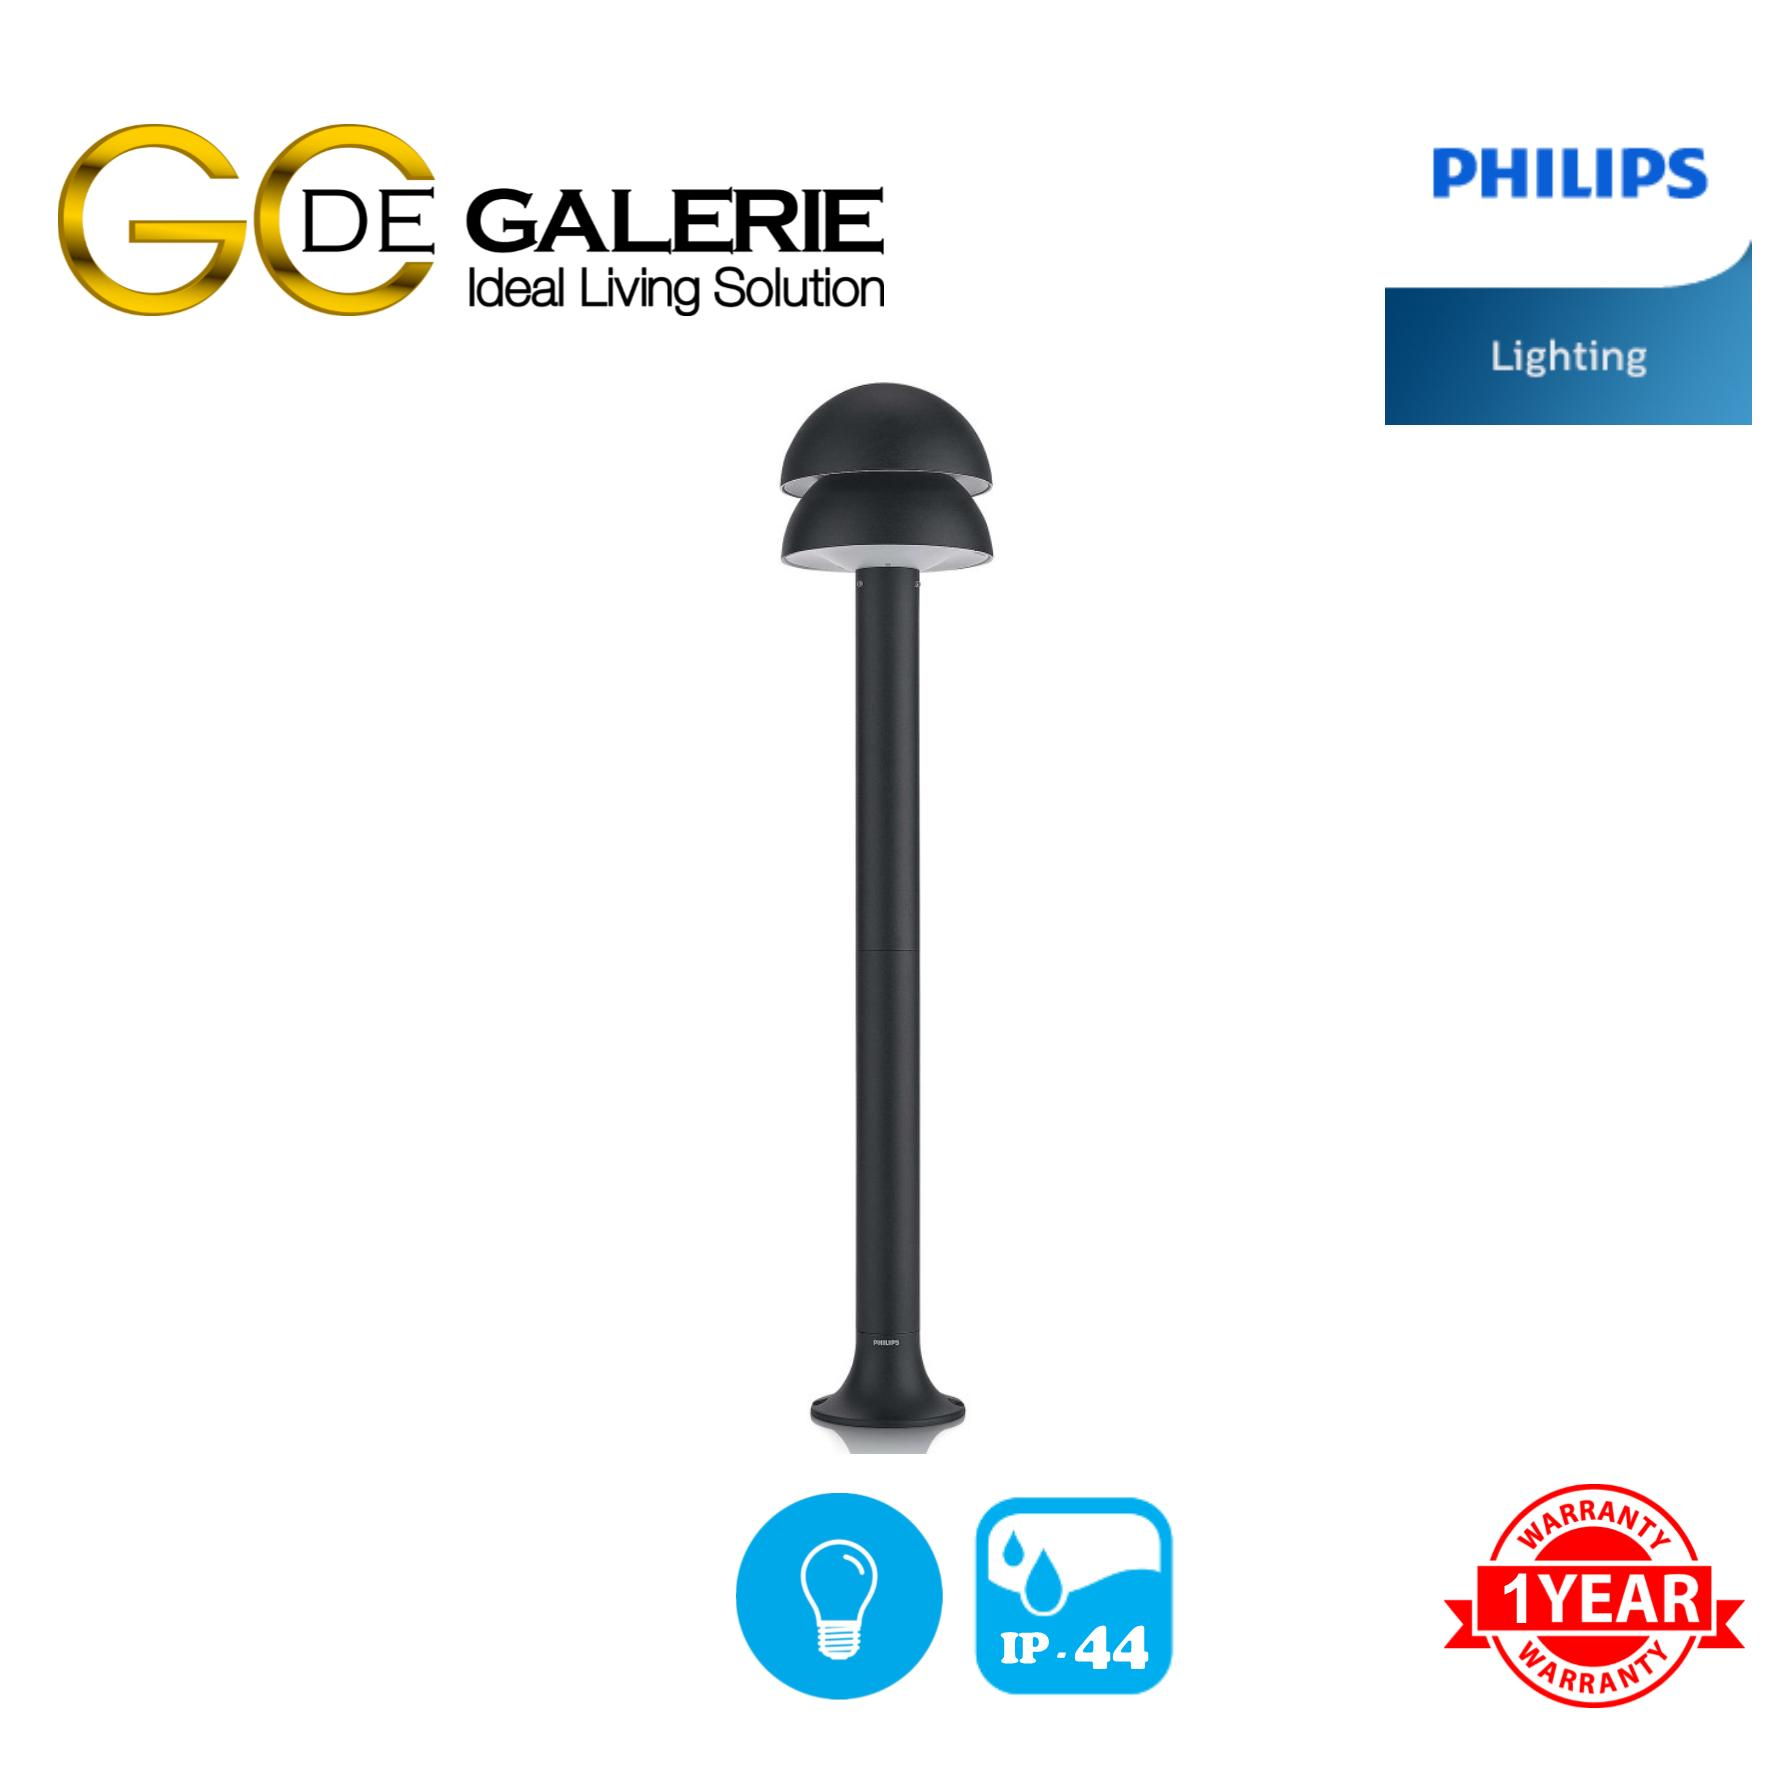 GARDEN LIGHT OUTDOOR PHILIPS 16453 KELAPA POST BK 1x20W 230V